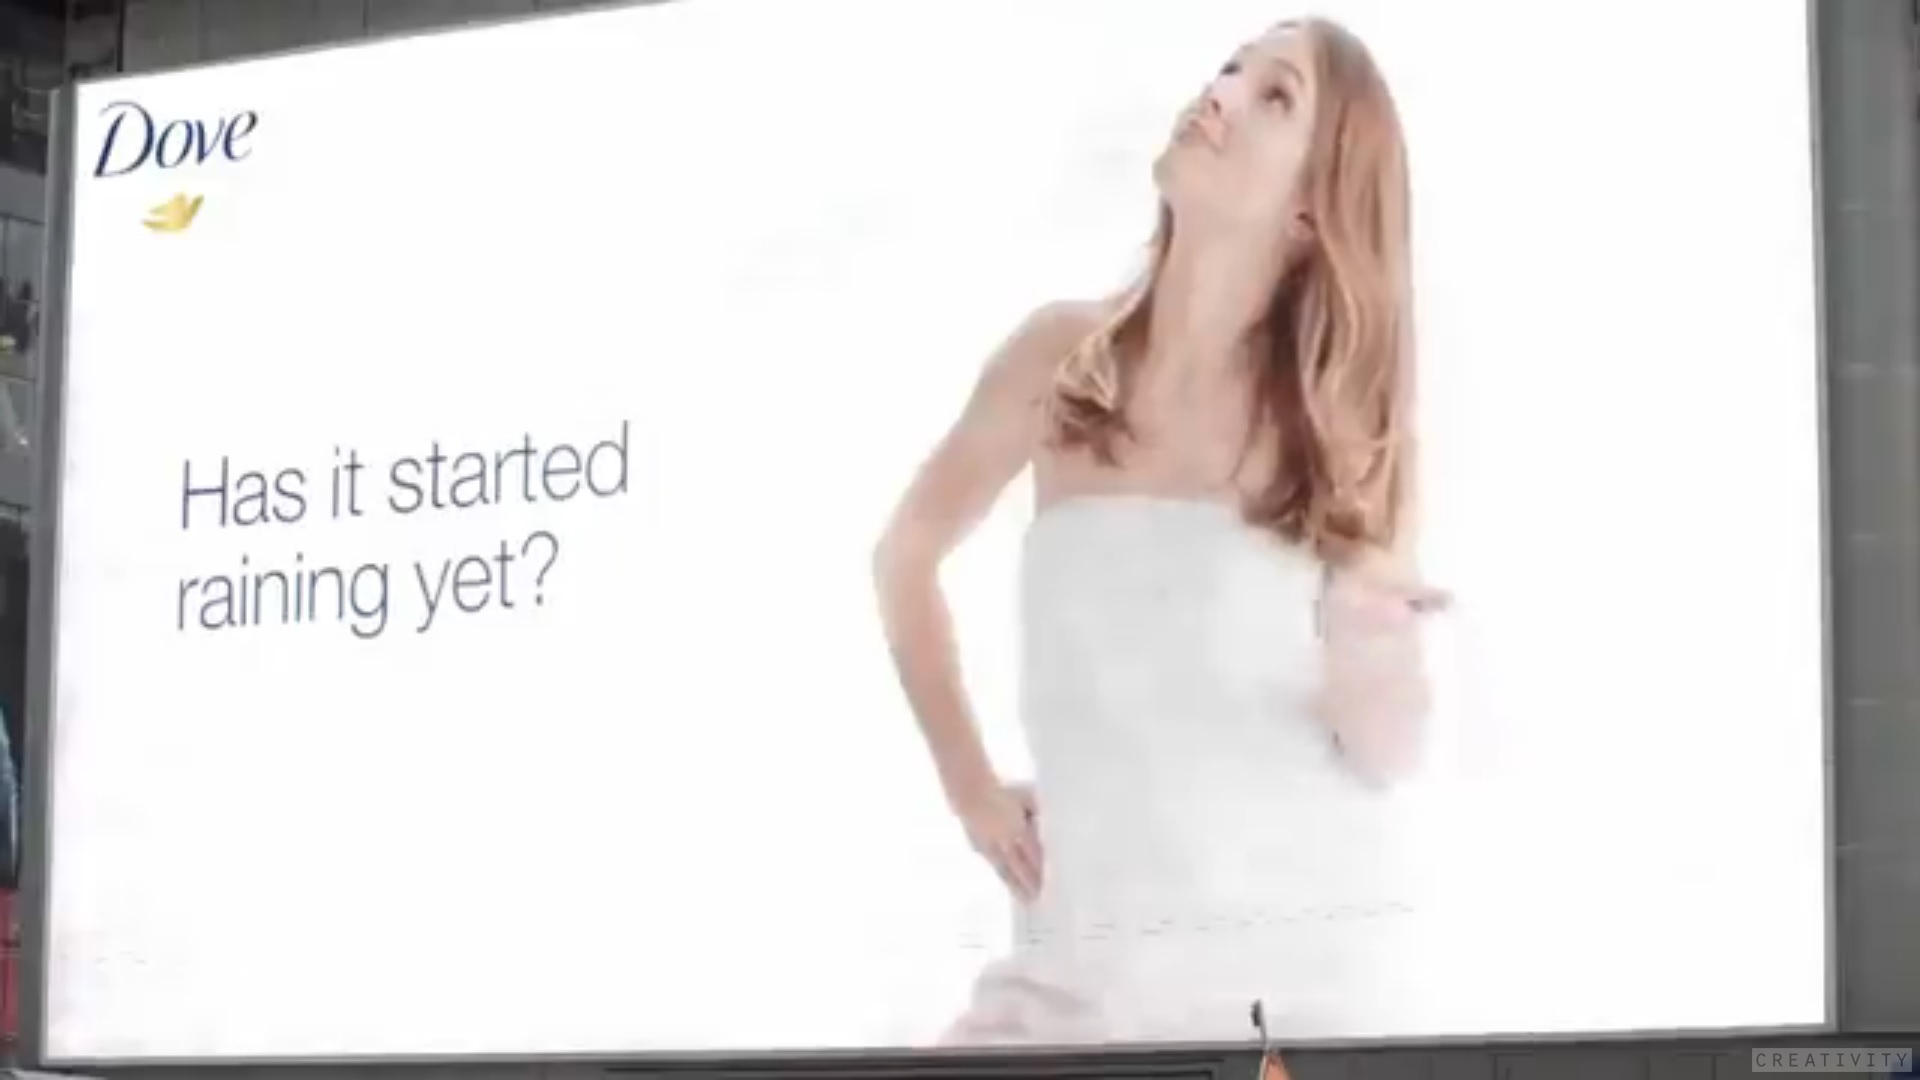 real time marketing dove